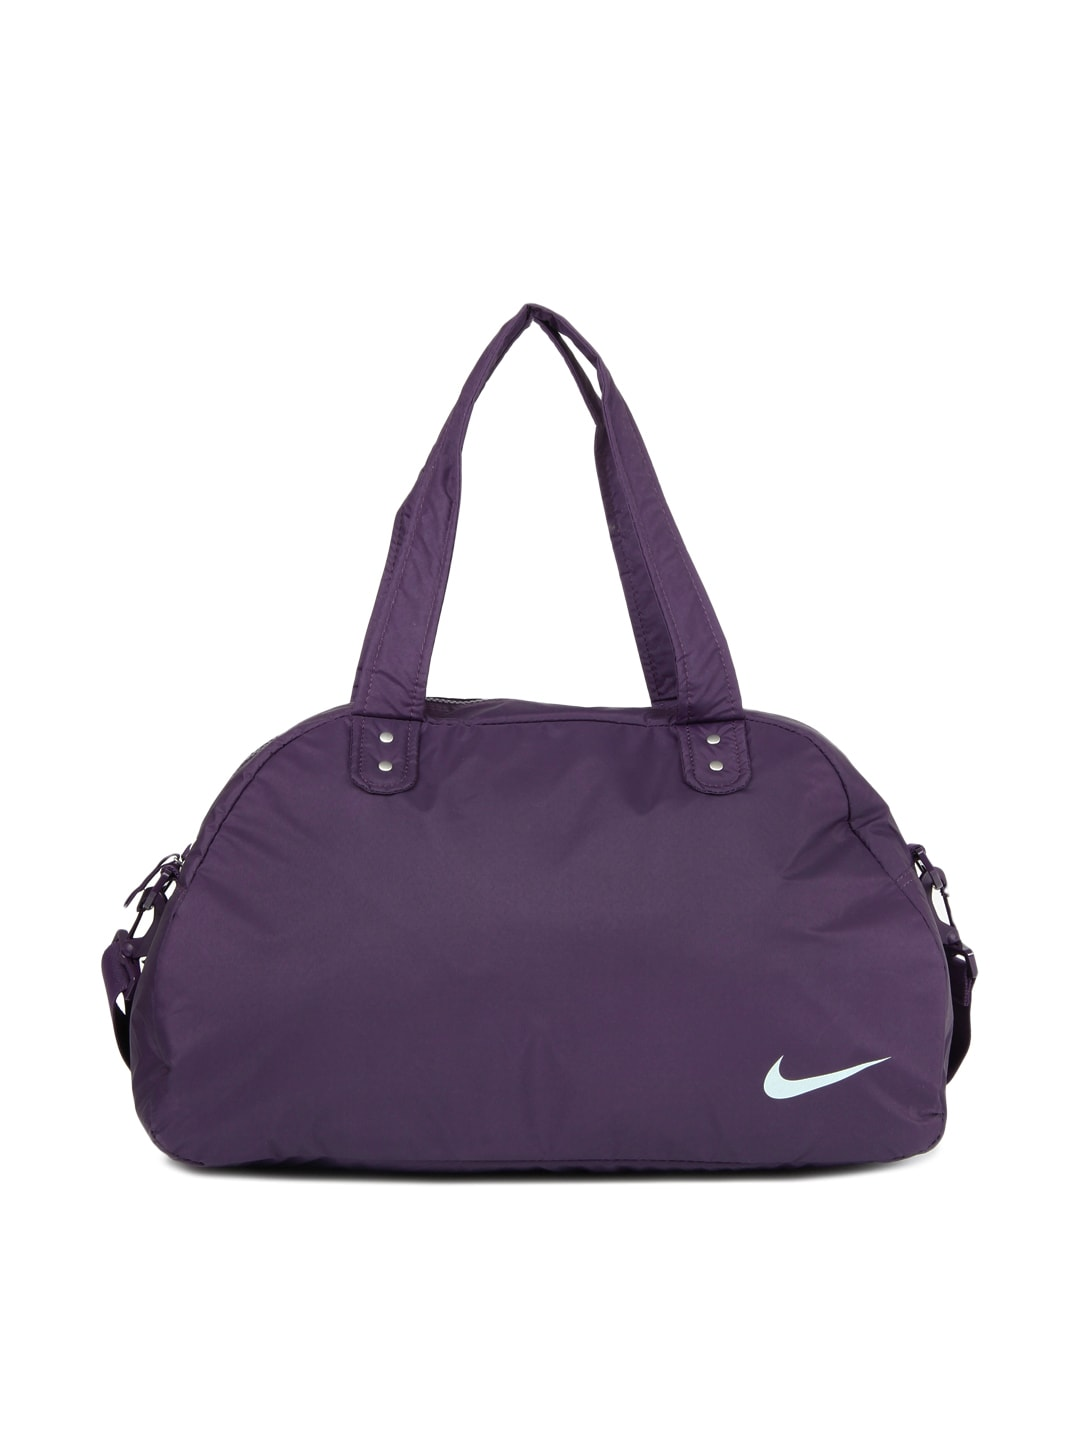 Creative  Alternative NCAA Duffel Bags For Both Men And Women Sporty Girls Will Love The Look And Design Of This Classic Adidas Bag, Available In A Slew Of Various Color